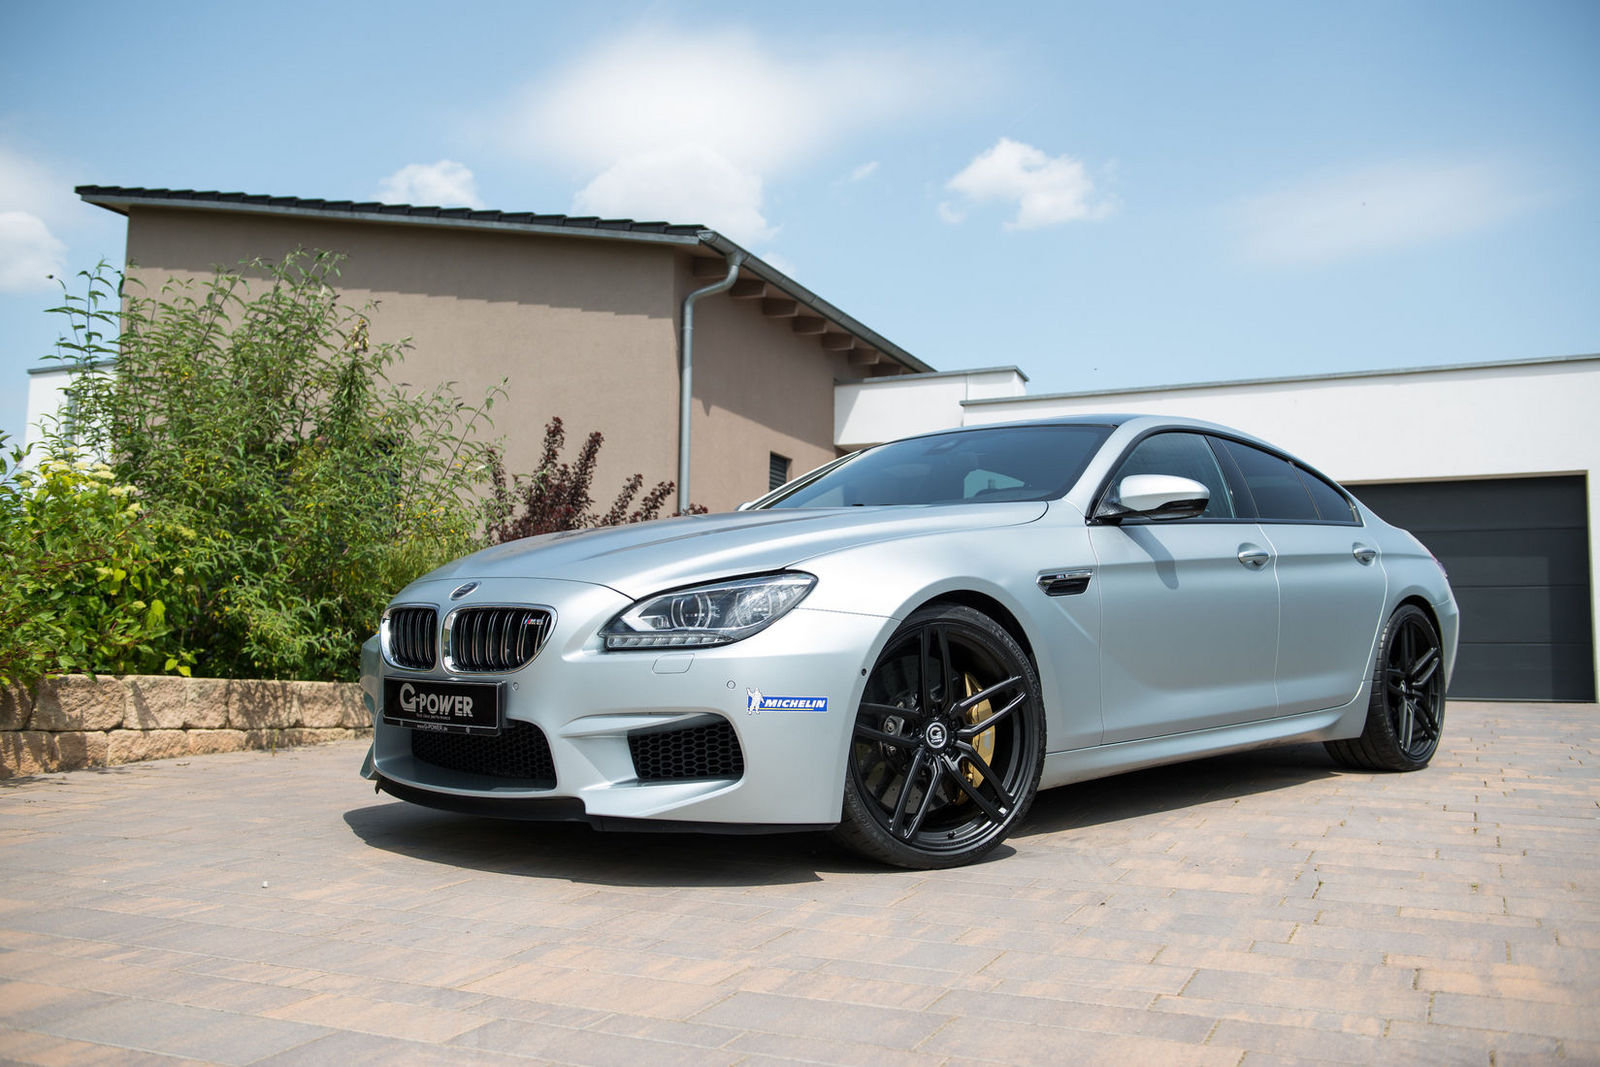 2014 bmw m6 gran coupe by g power picture 568710 car. Black Bedroom Furniture Sets. Home Design Ideas